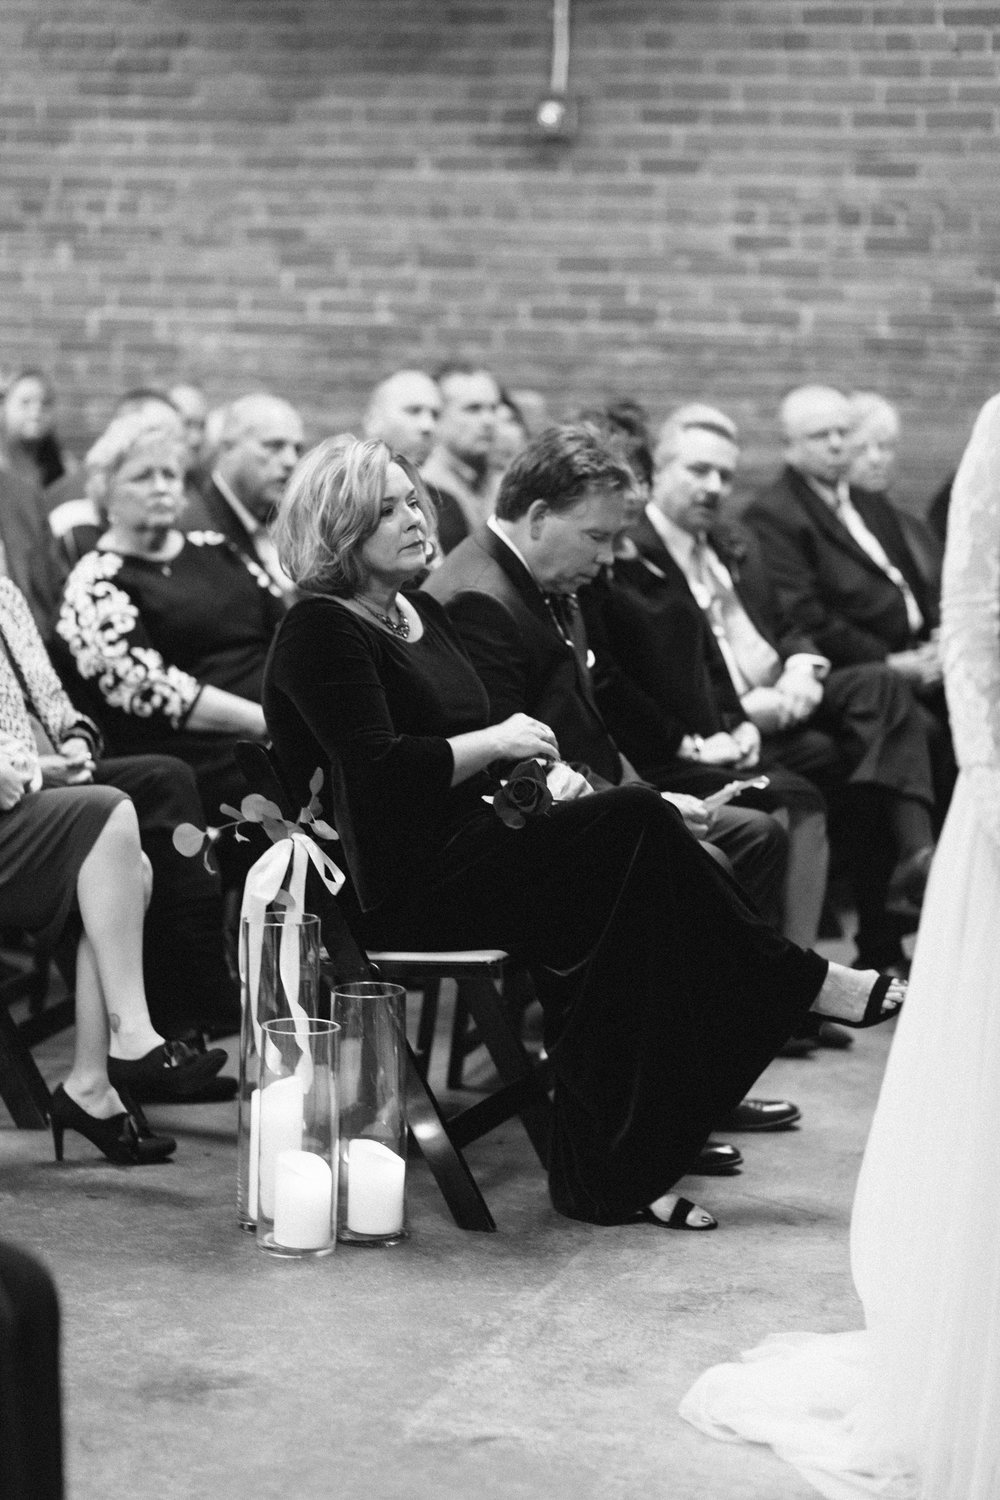 Lauren_Jeremy_Standard_Wedding_Knoxville_Abigail_Malone_Photography_FIlm-471.jpg